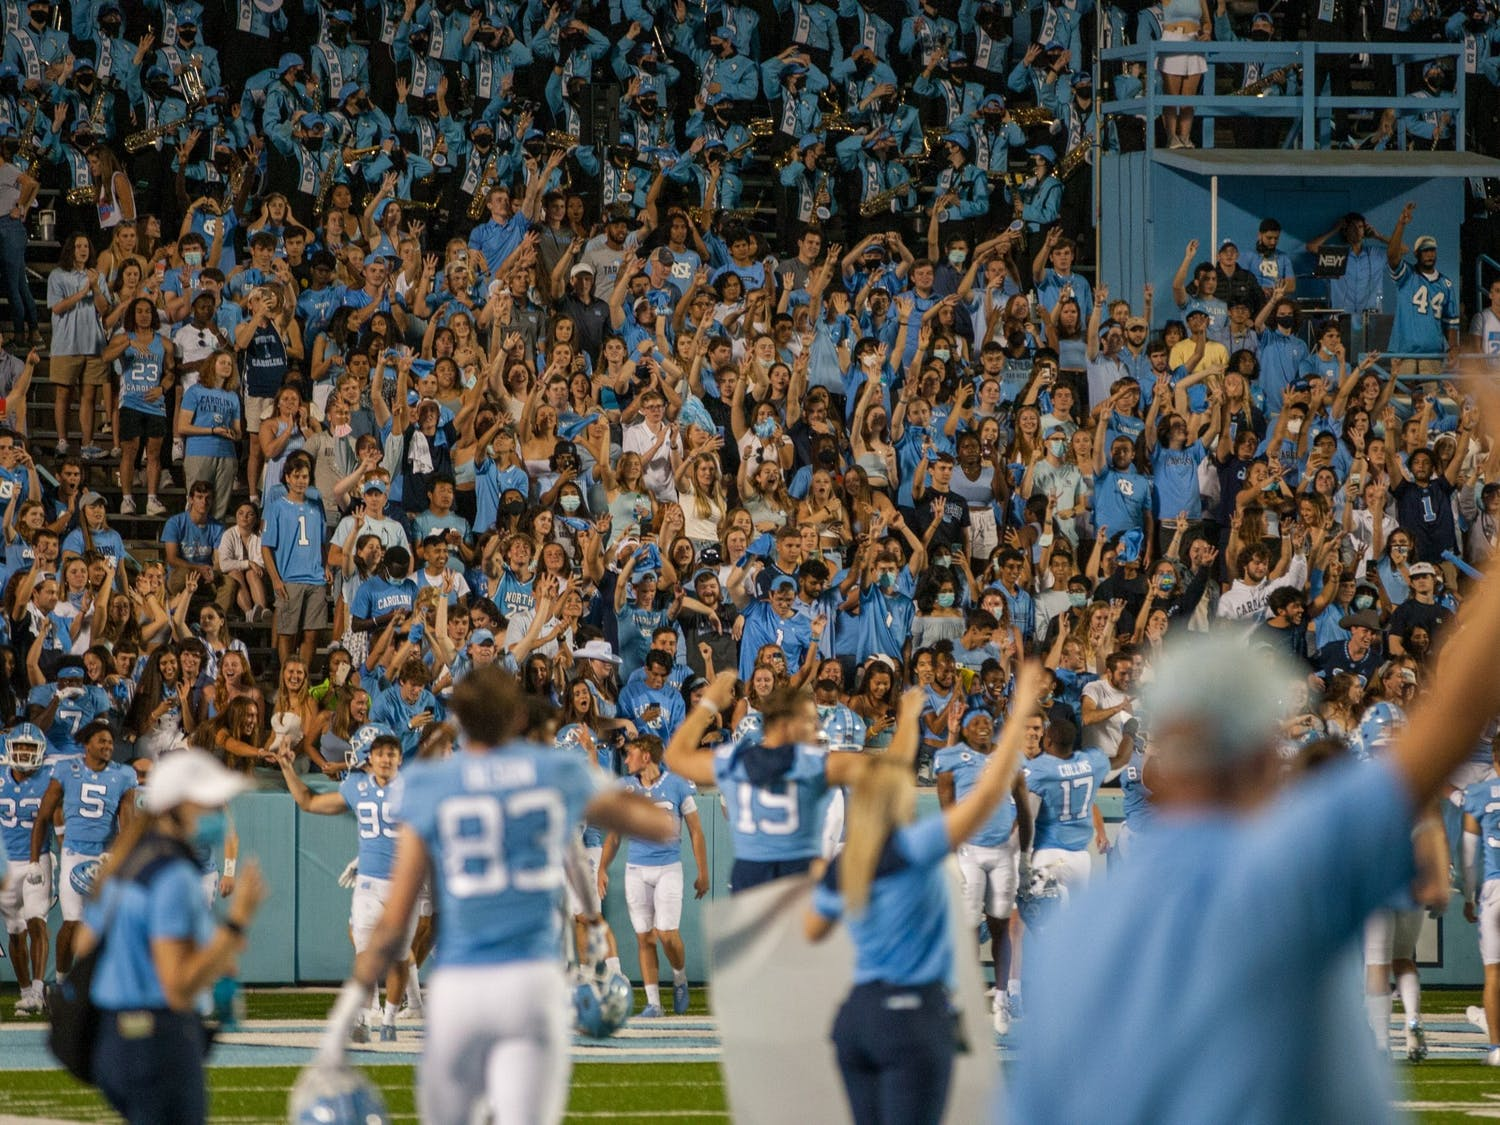 UNC fans celebrate a touchdown during the Tar Heels' home matchup in Kenan Memorial Stadium on Saturday, Sept. 11, 2021 against the Georgia State Panthers. The Tar Heels won 59-17.